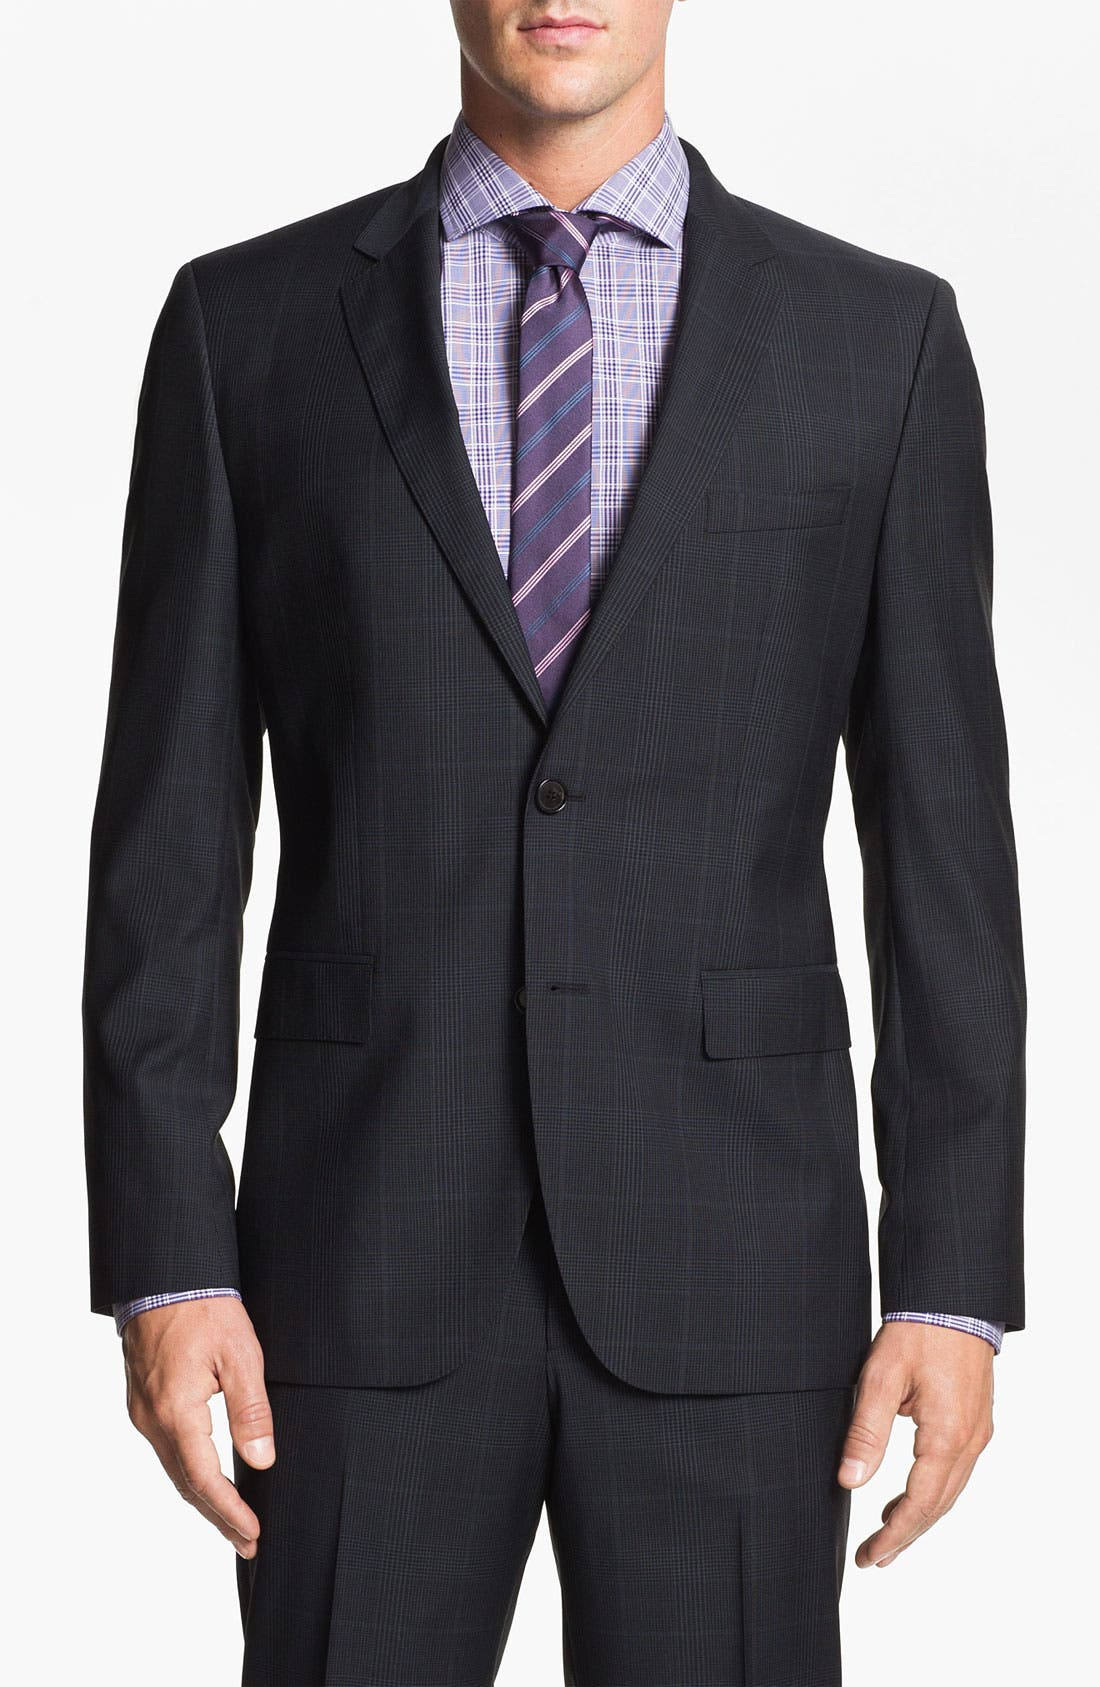 Main Image - BOSS Black 'Jam/Sharp' Trim Fit Plaid Suit